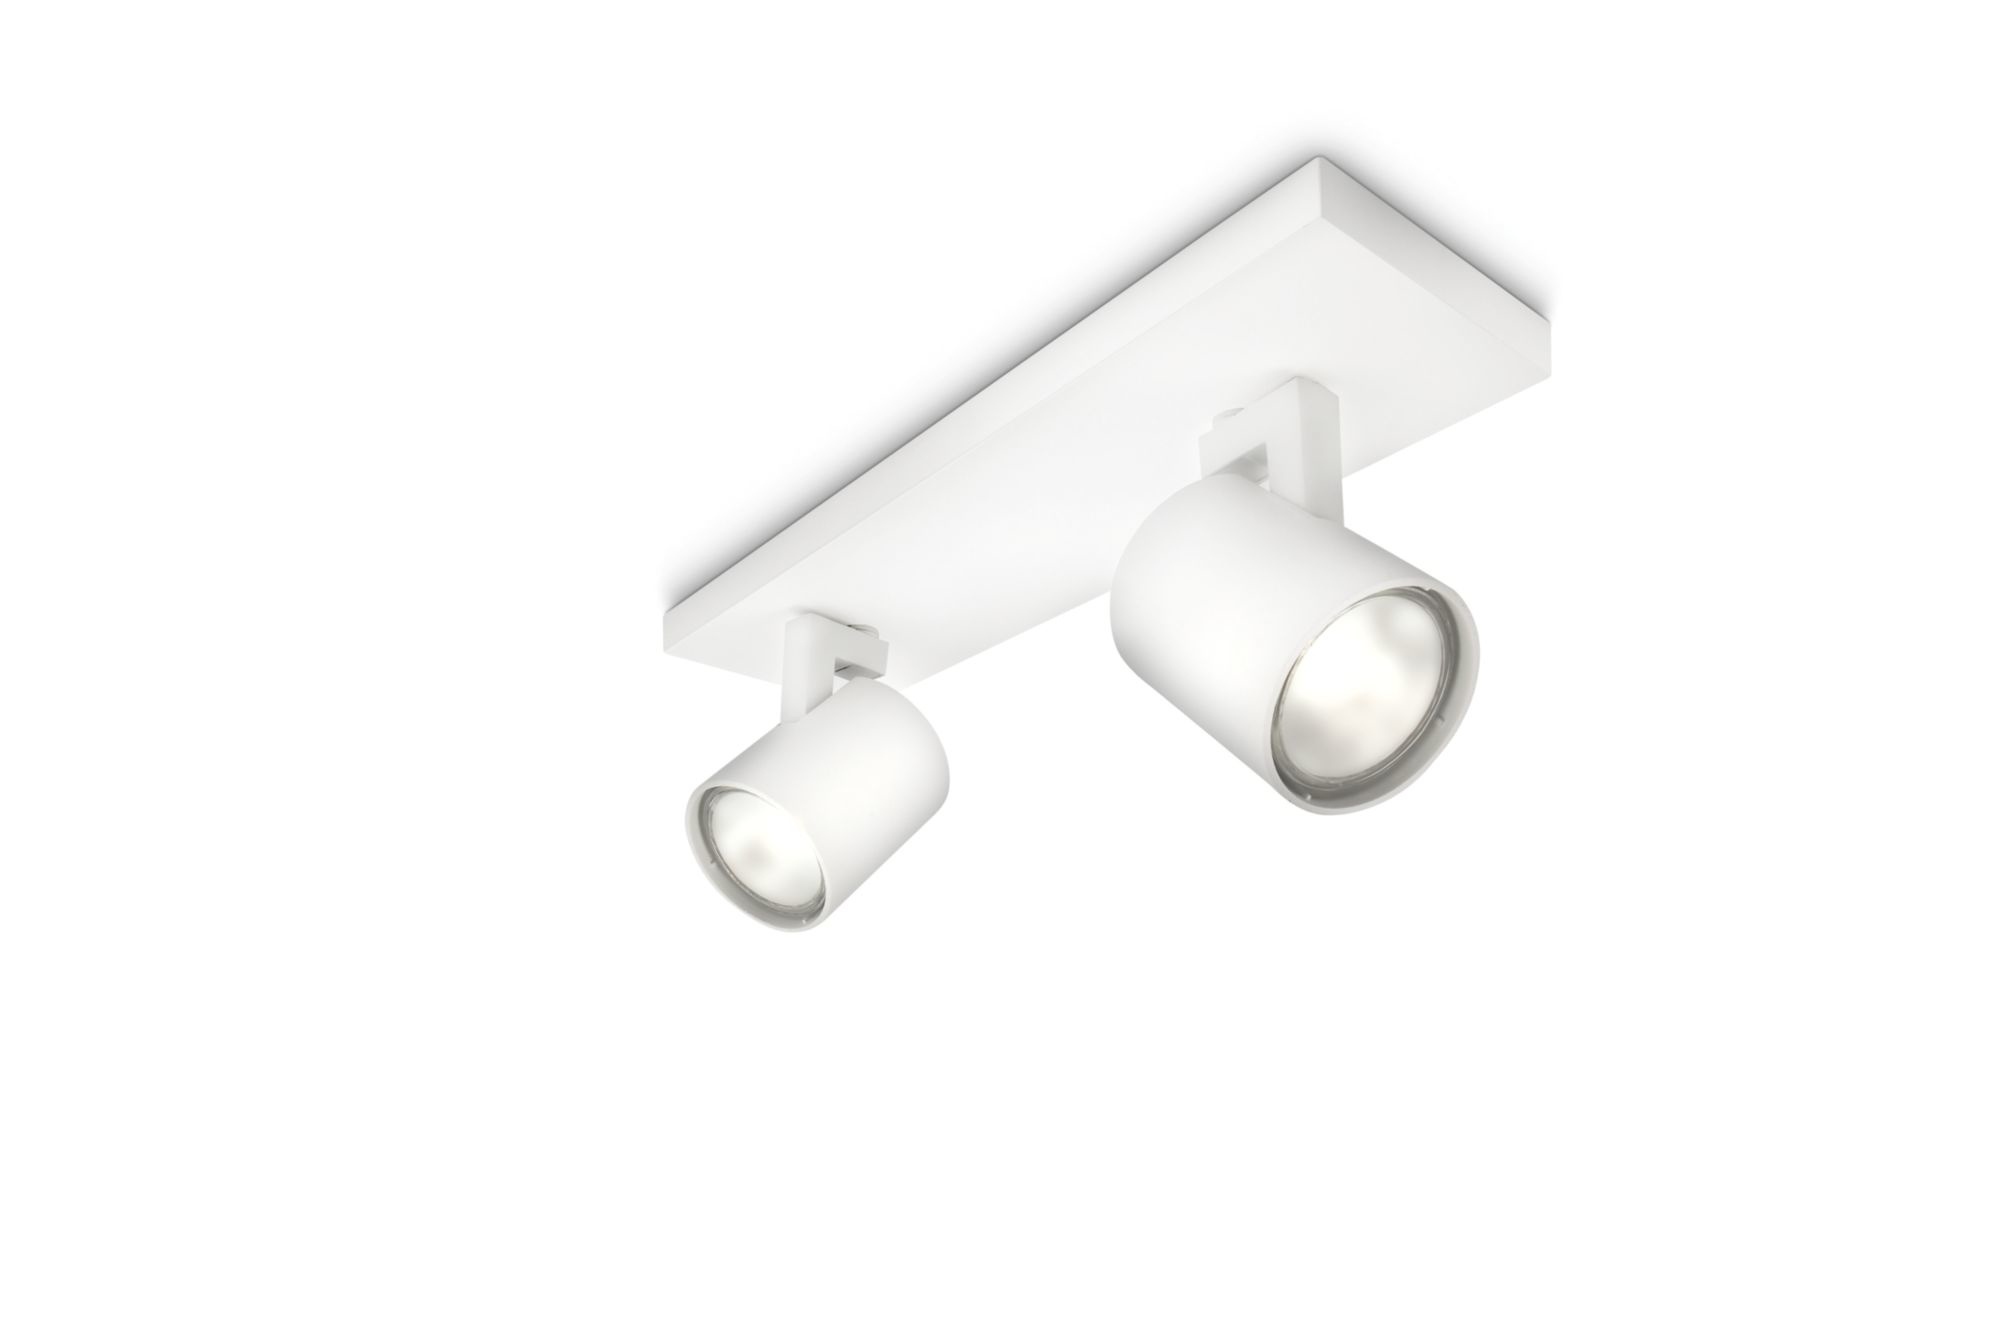 Philips Lighting - Runner 2xGU10 bianco - 530923112